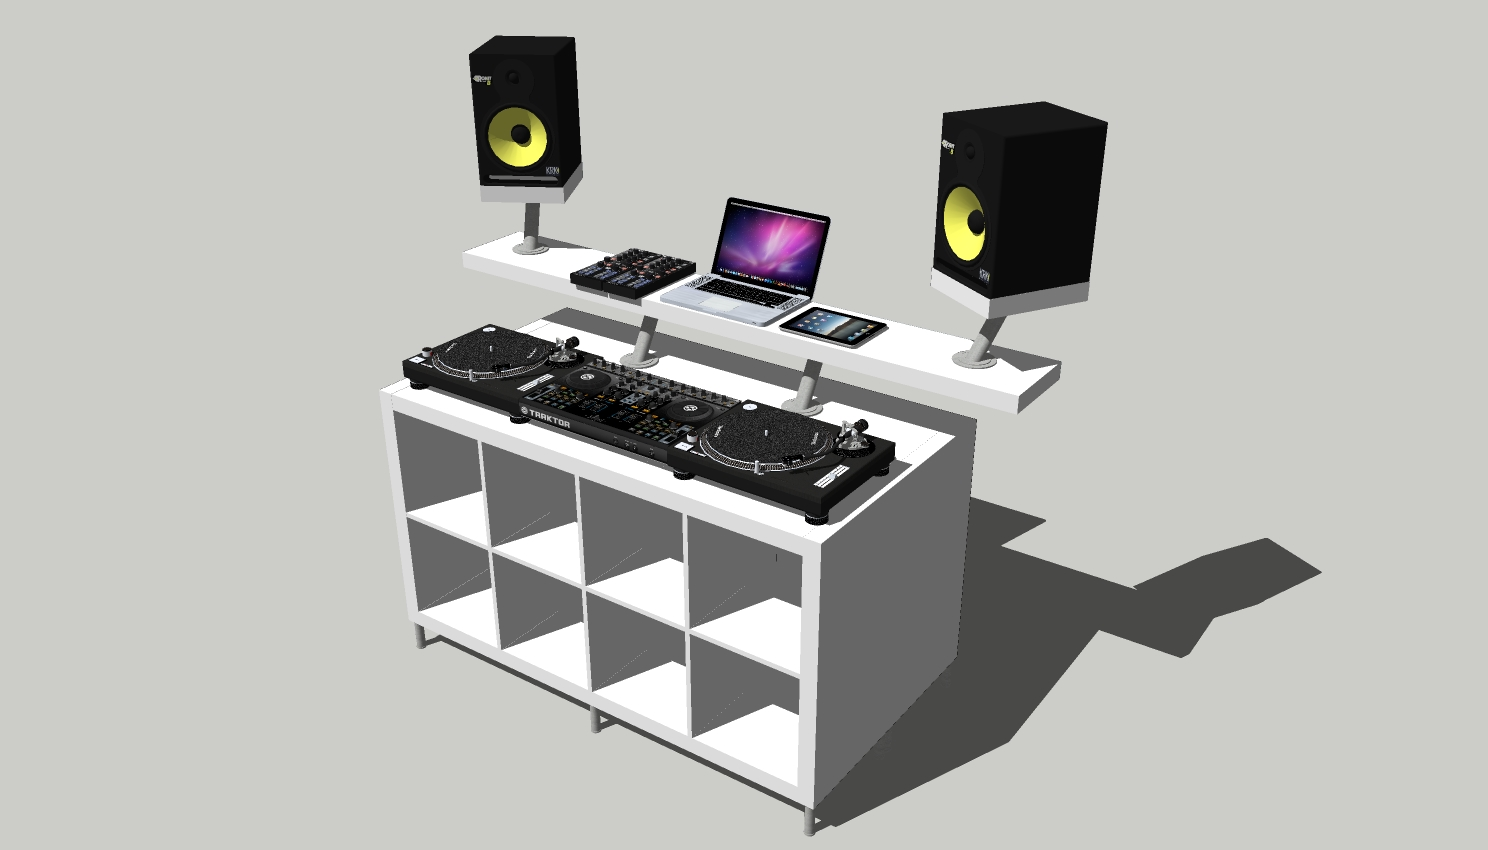 Dj Booth For Sale >> How To Create A Professional Dj Booth From Ikea Parts Dj Techtools